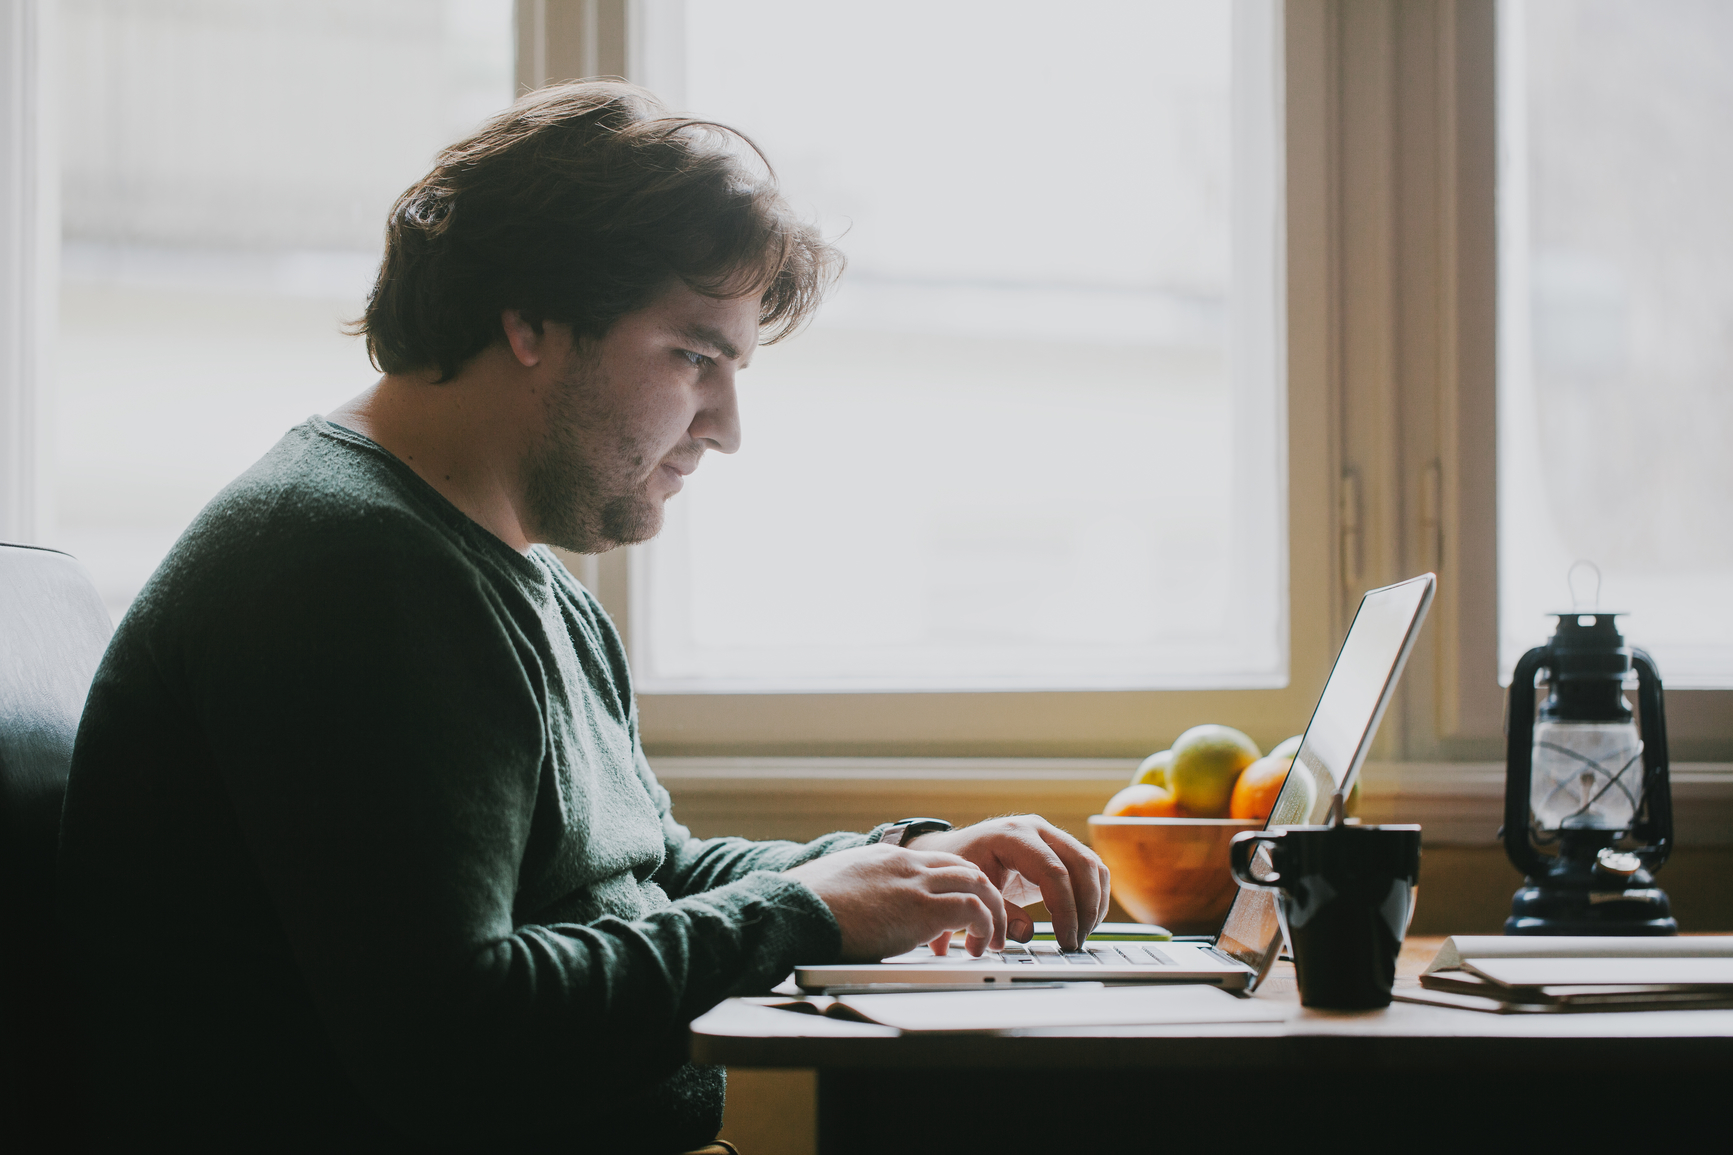 Caucasian man working on his laptop at home.